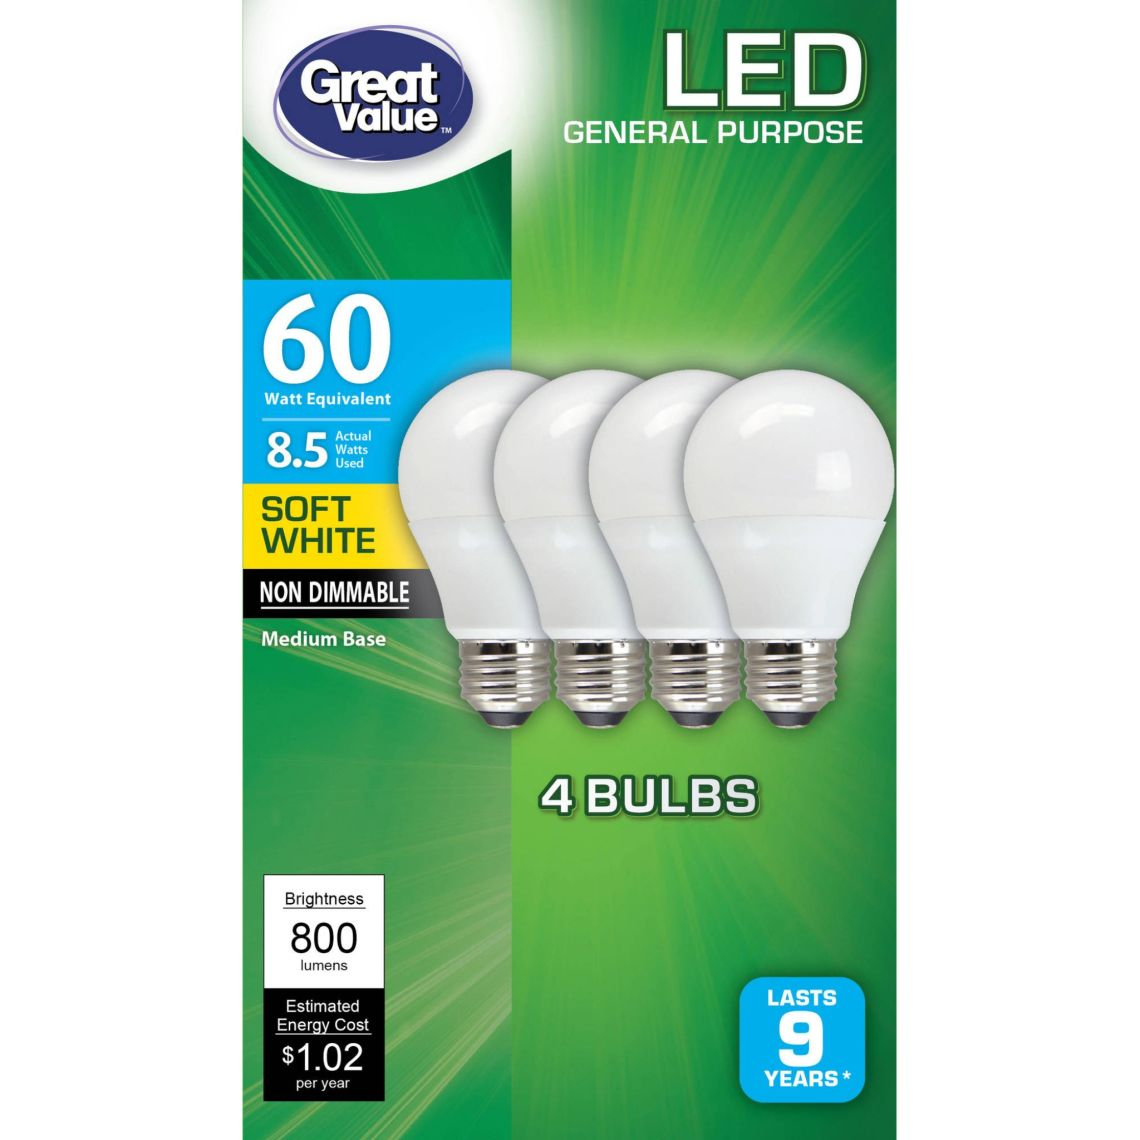 Great Value LED Light Bulbs, 8.5W (60W Equivalent), Soft White, 4-count - Walmart.com